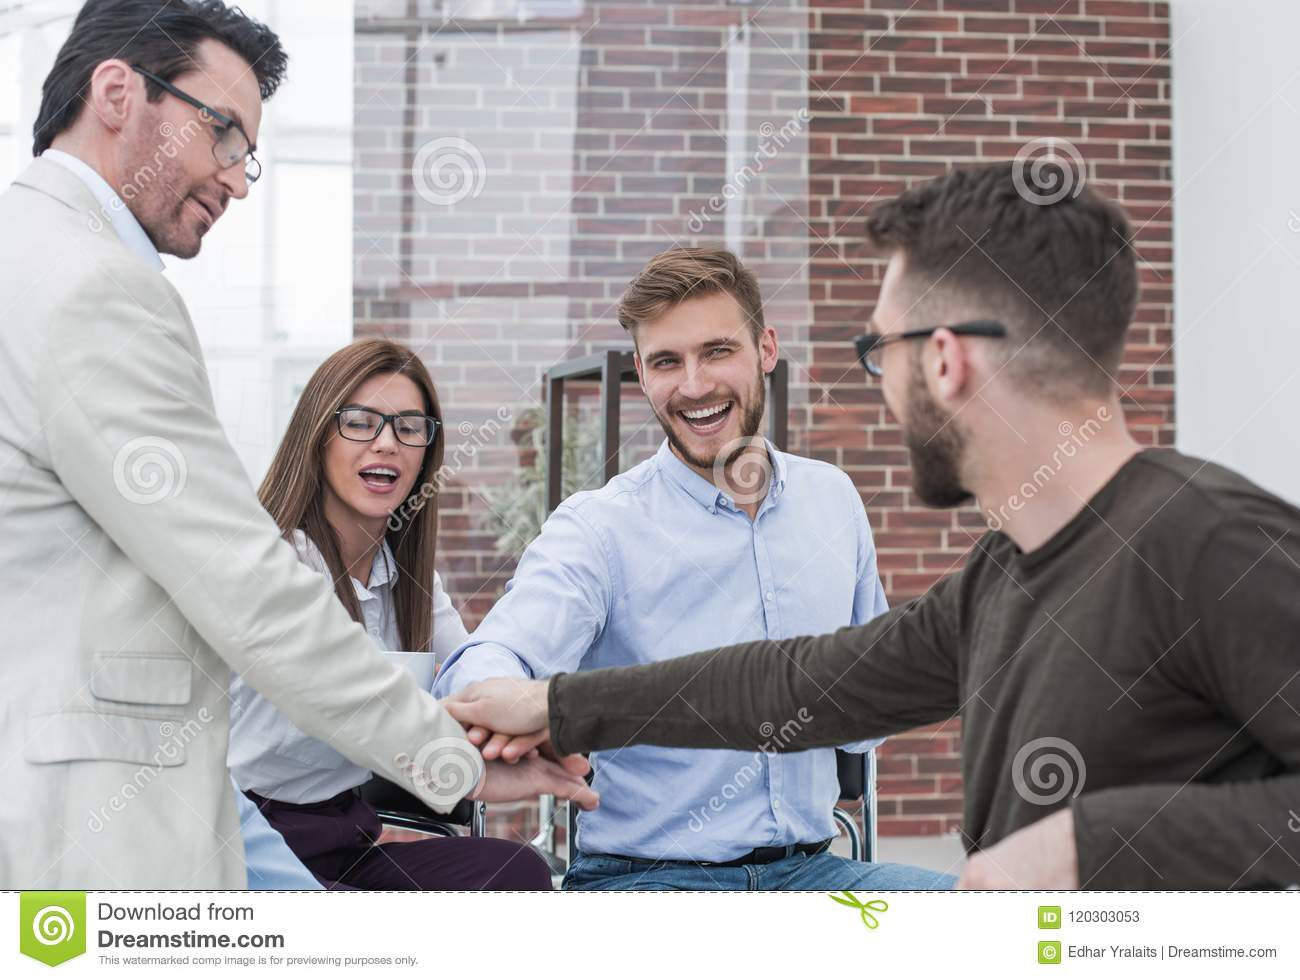 Business team makes an important decision